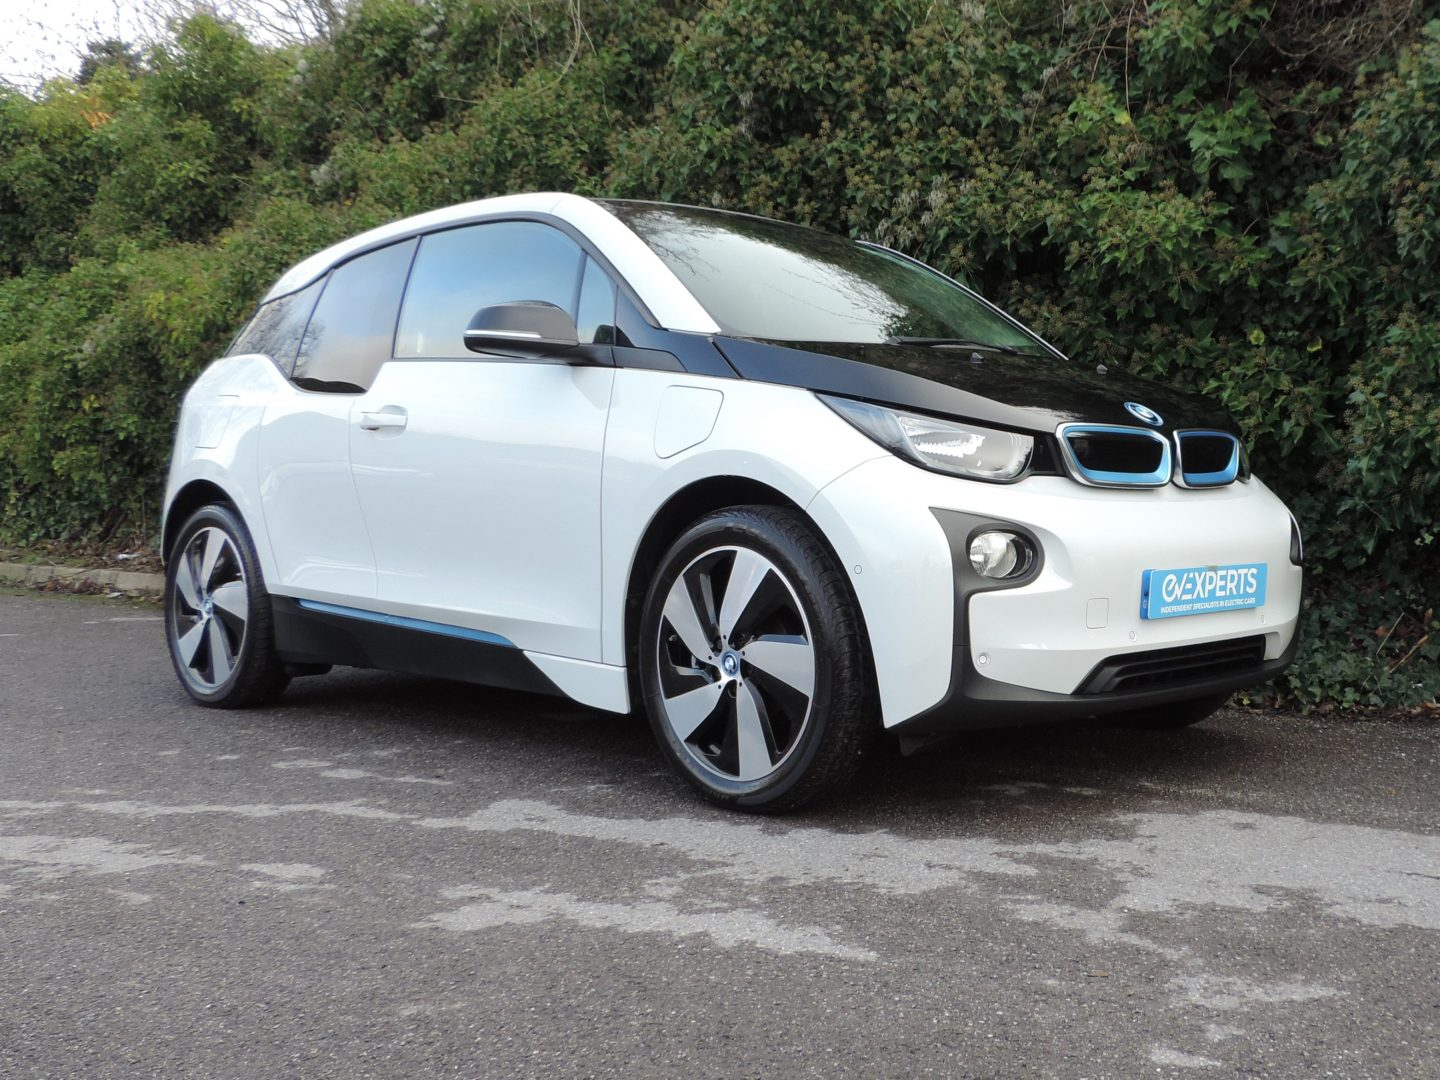 BMW i3 22kWh / 60Ah REX (2015) Capparis White / Suite Leather